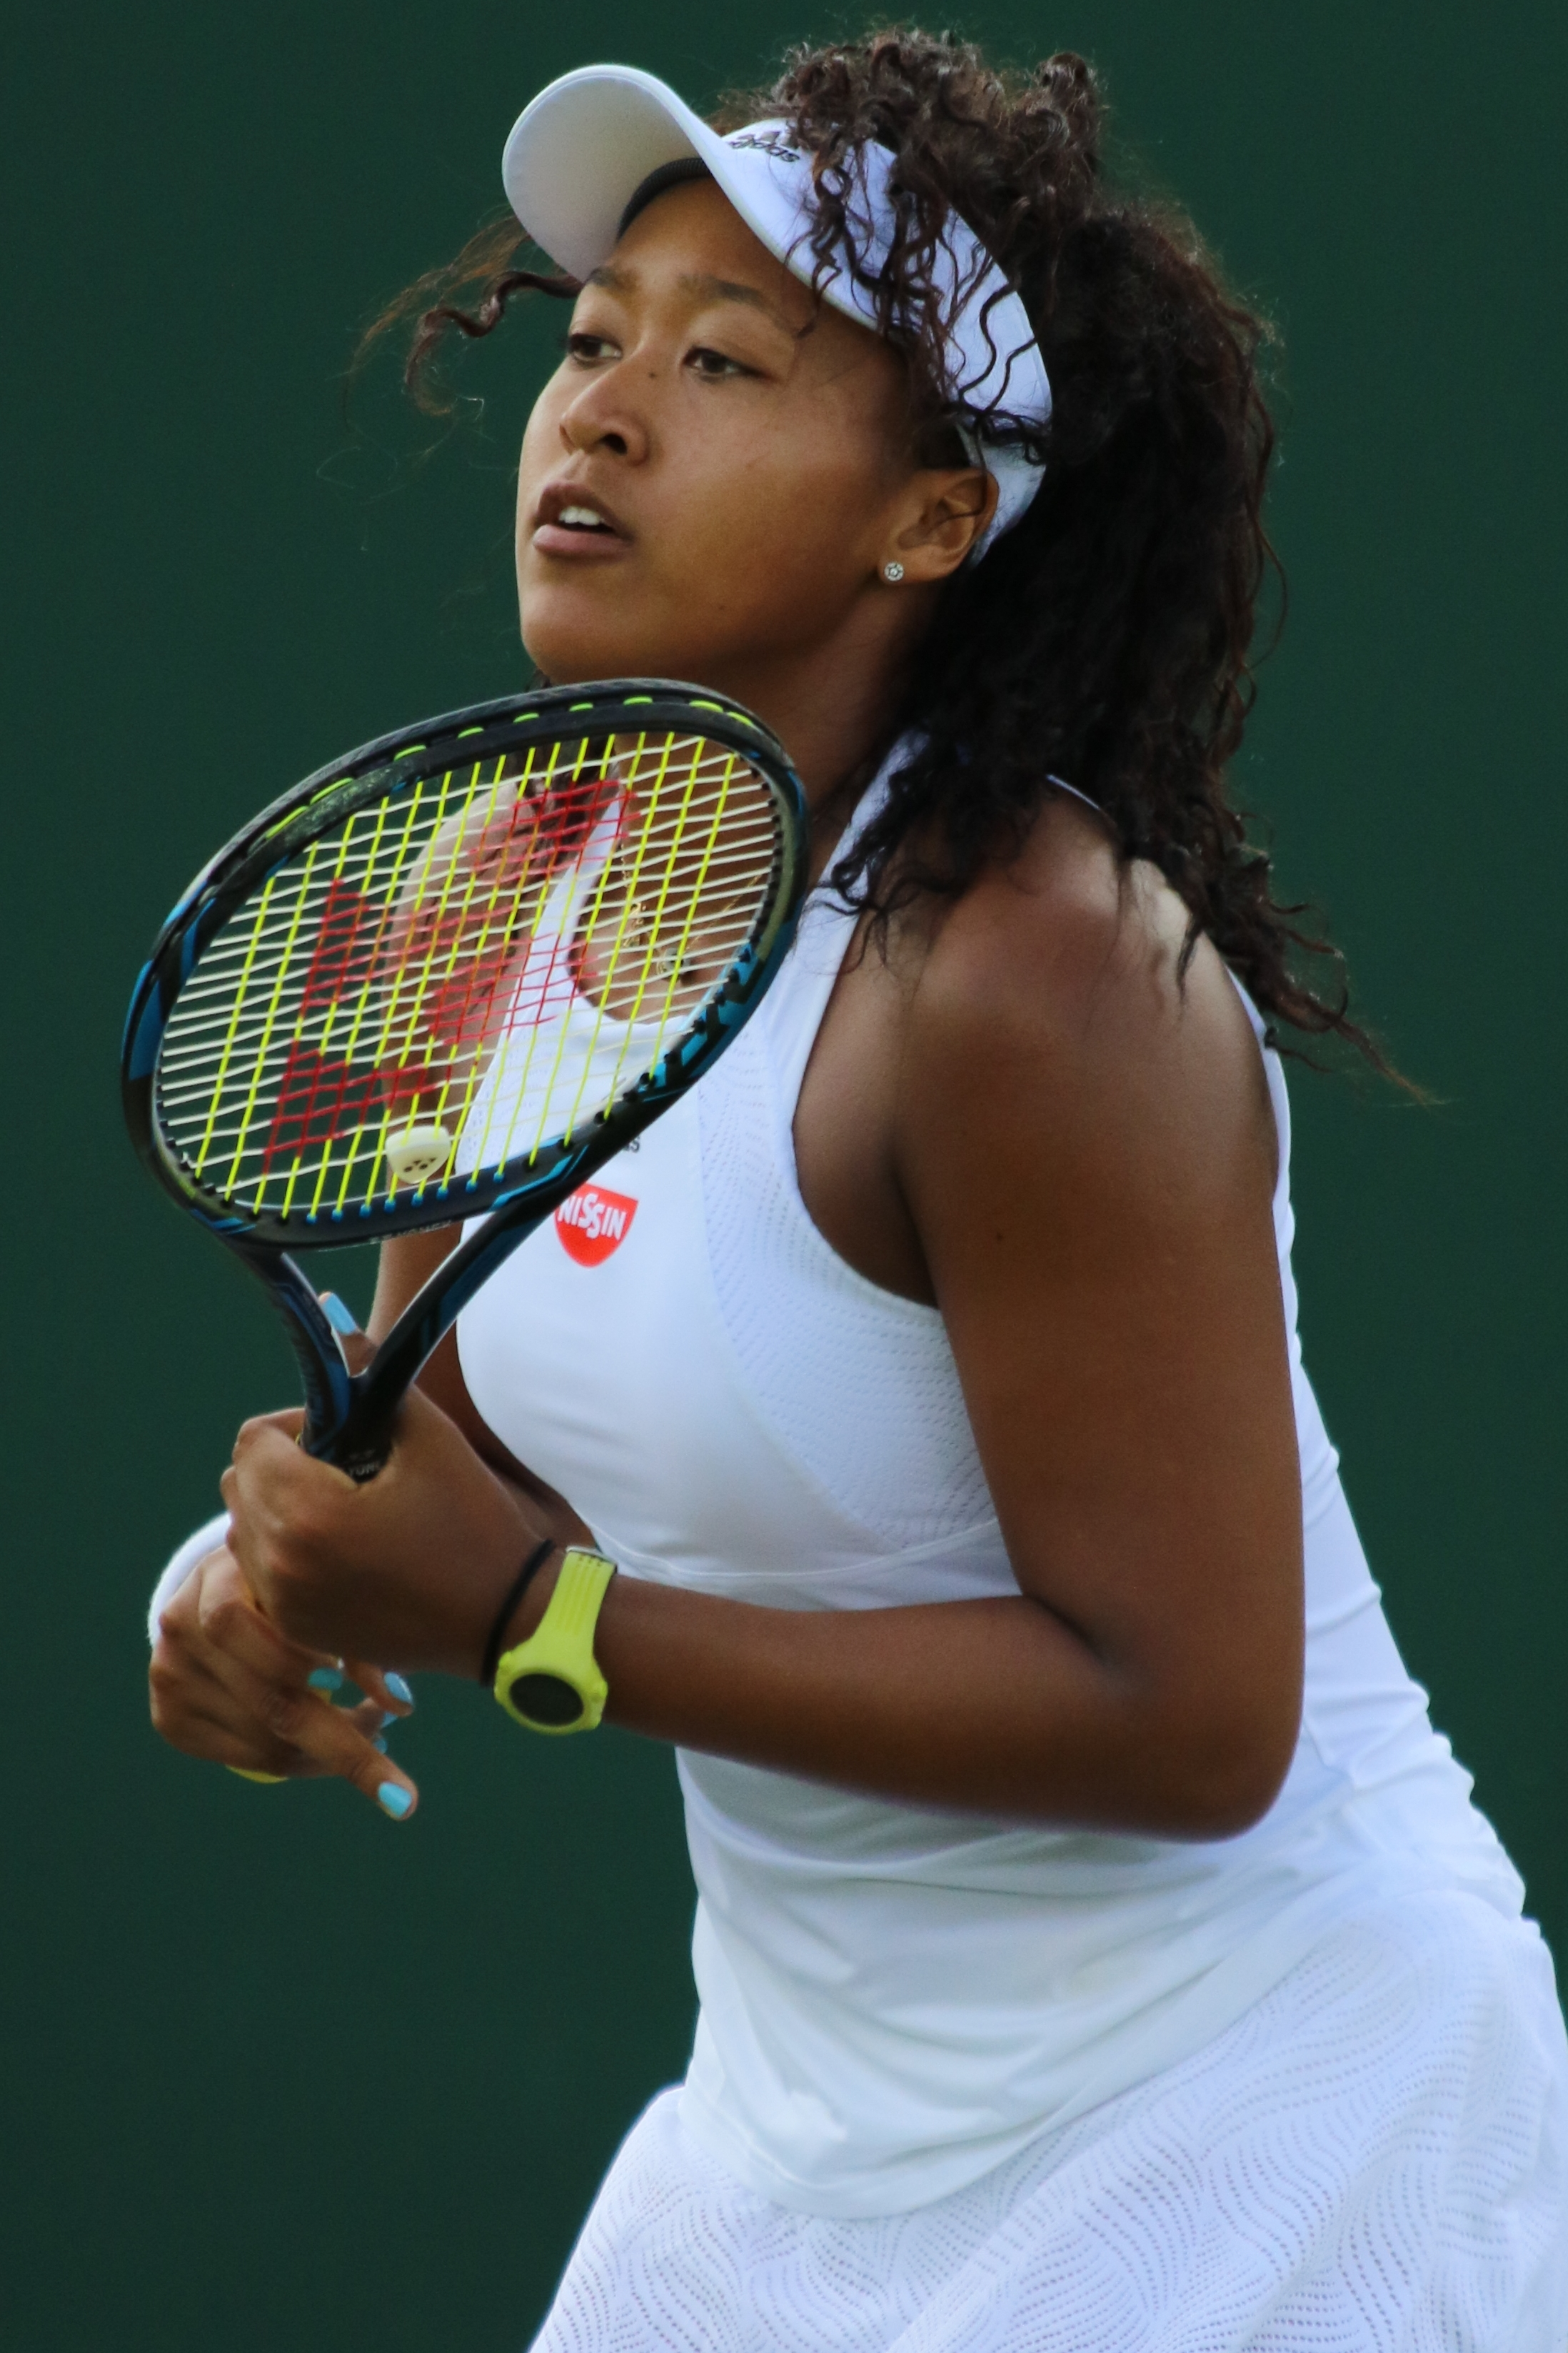 Japanese Naomi Osaka withdrew from the French Open after skipping a post-match news conference for mental health reasons (Photo courtesy of si.robi vis Flickr)